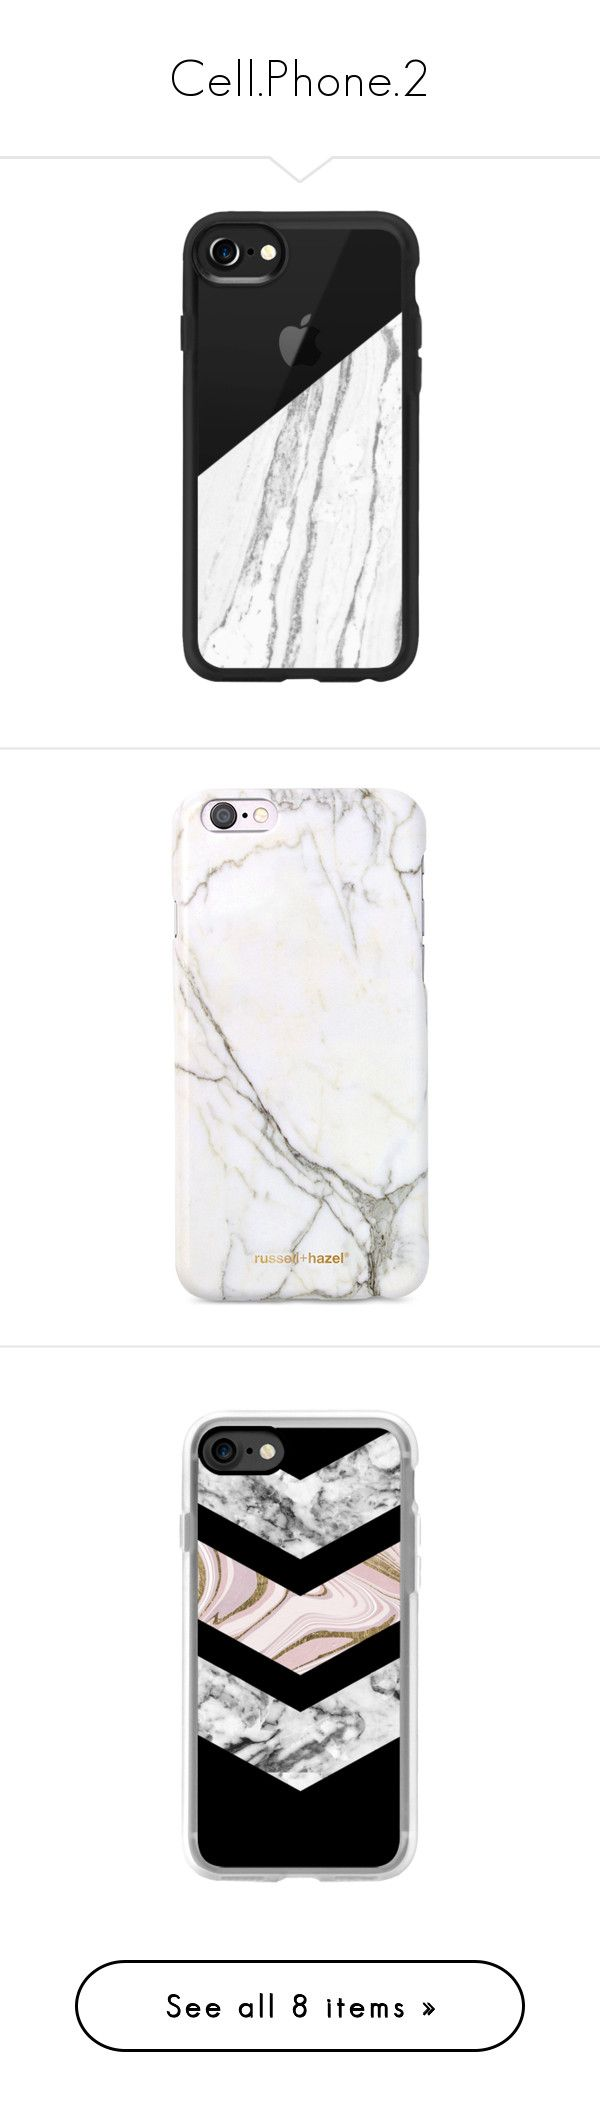 """""""Cell.Phone.2"""" by falconry ❤ liked on Polyvore featuring accessories, tech accessories, iphone case, iphone cover case, iphone cases, apple iphone case, slim iphone case, phone cases, phones and fillers"""